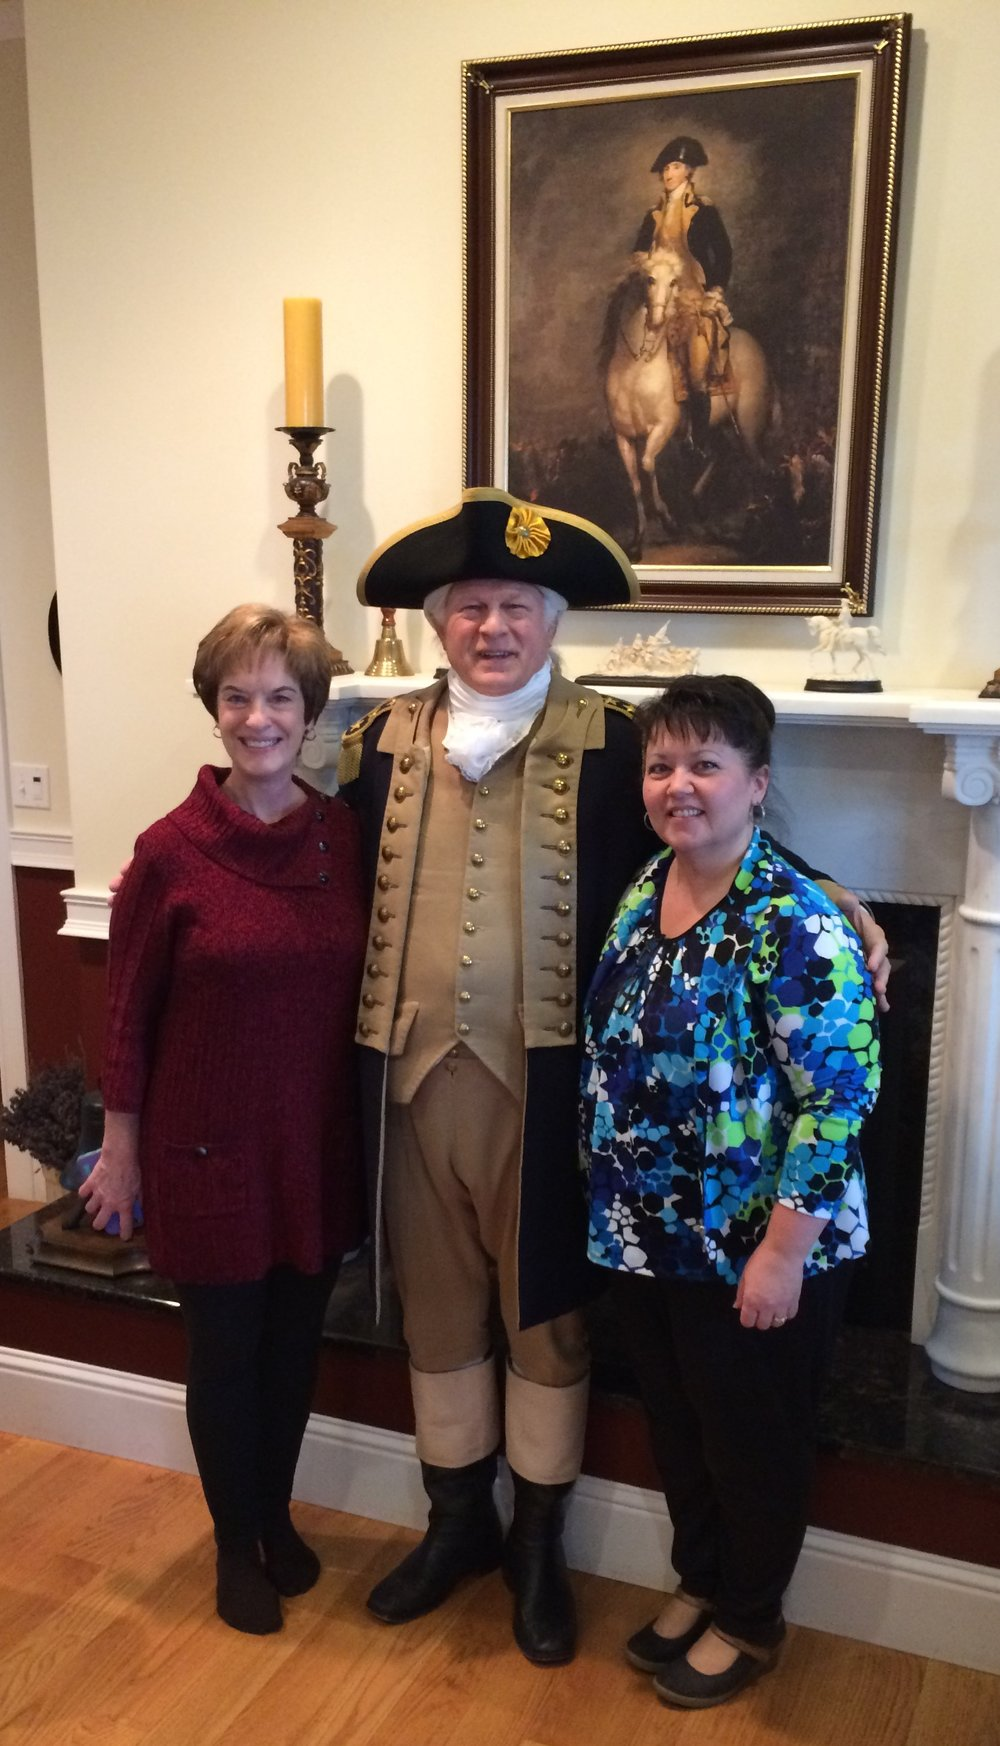 President Washington entertaining his guests. Wife Lois is on the left.